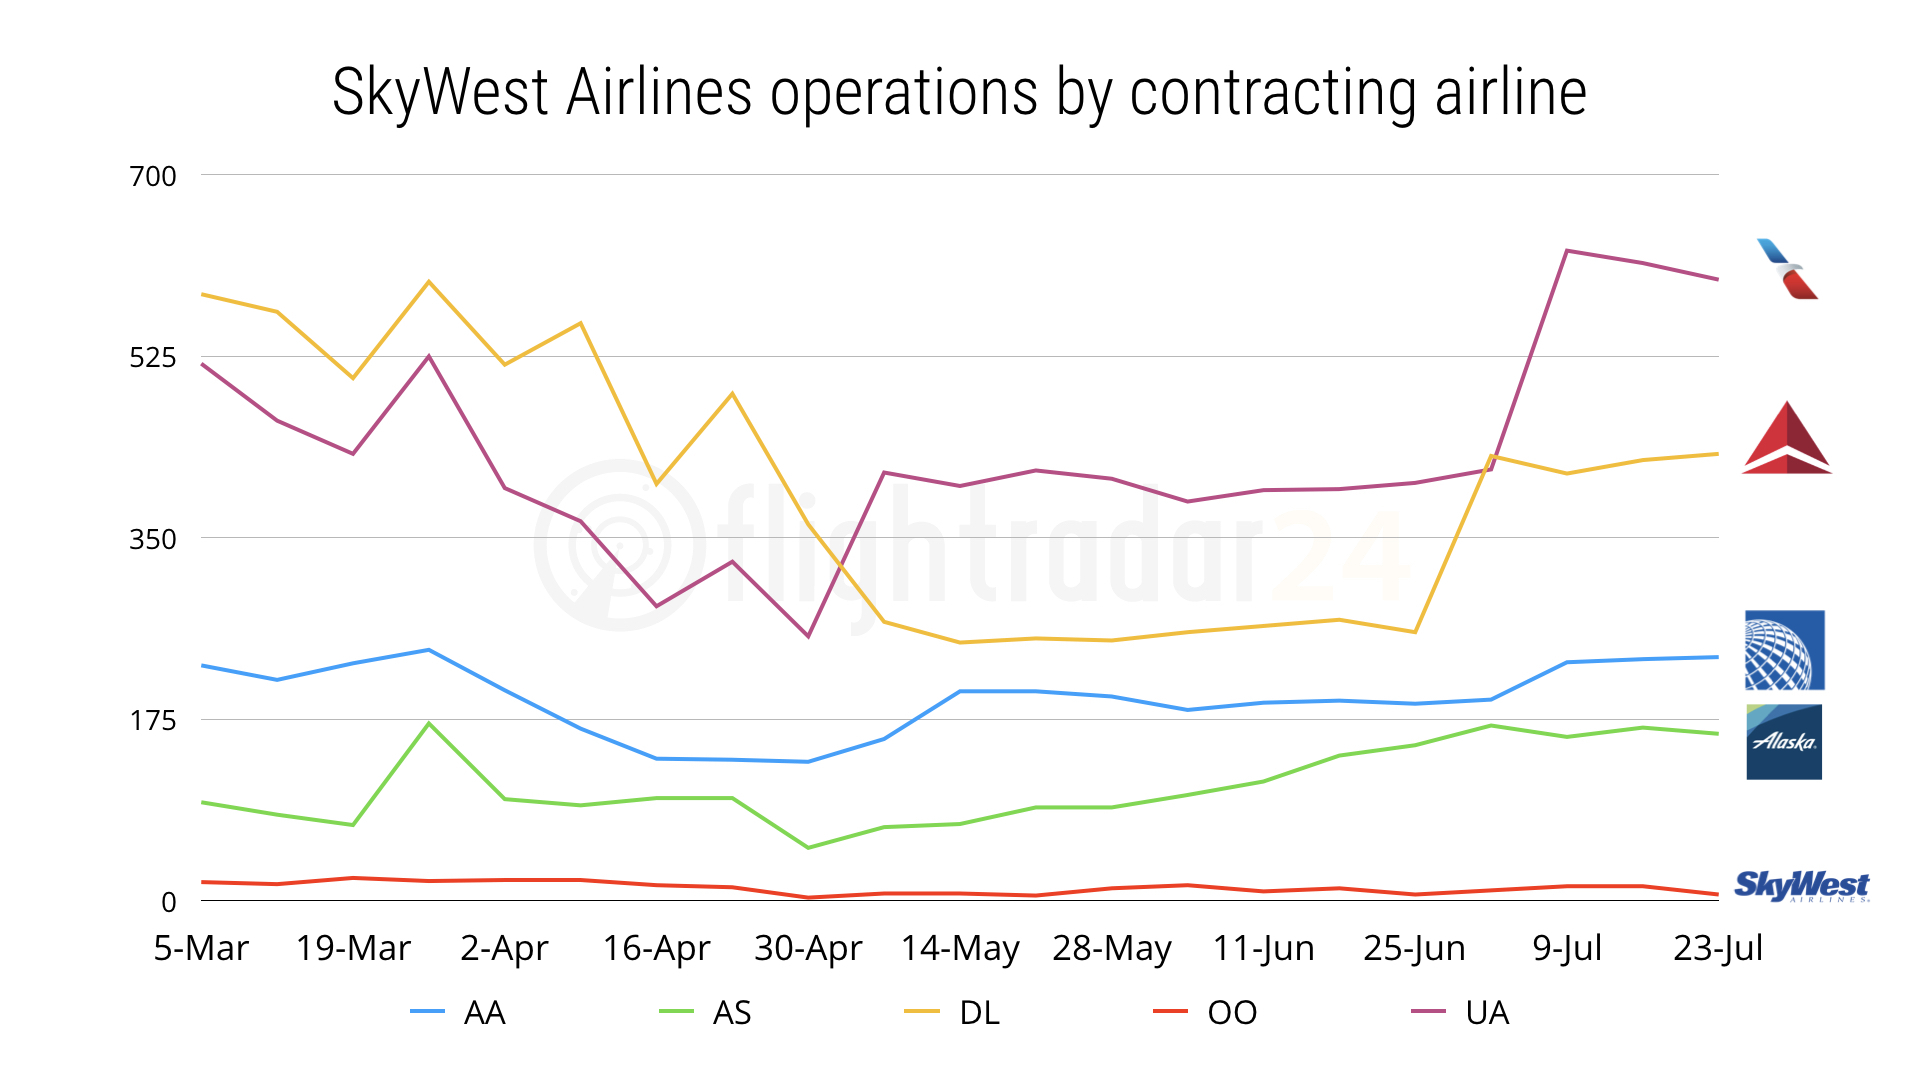 Skywest flights data